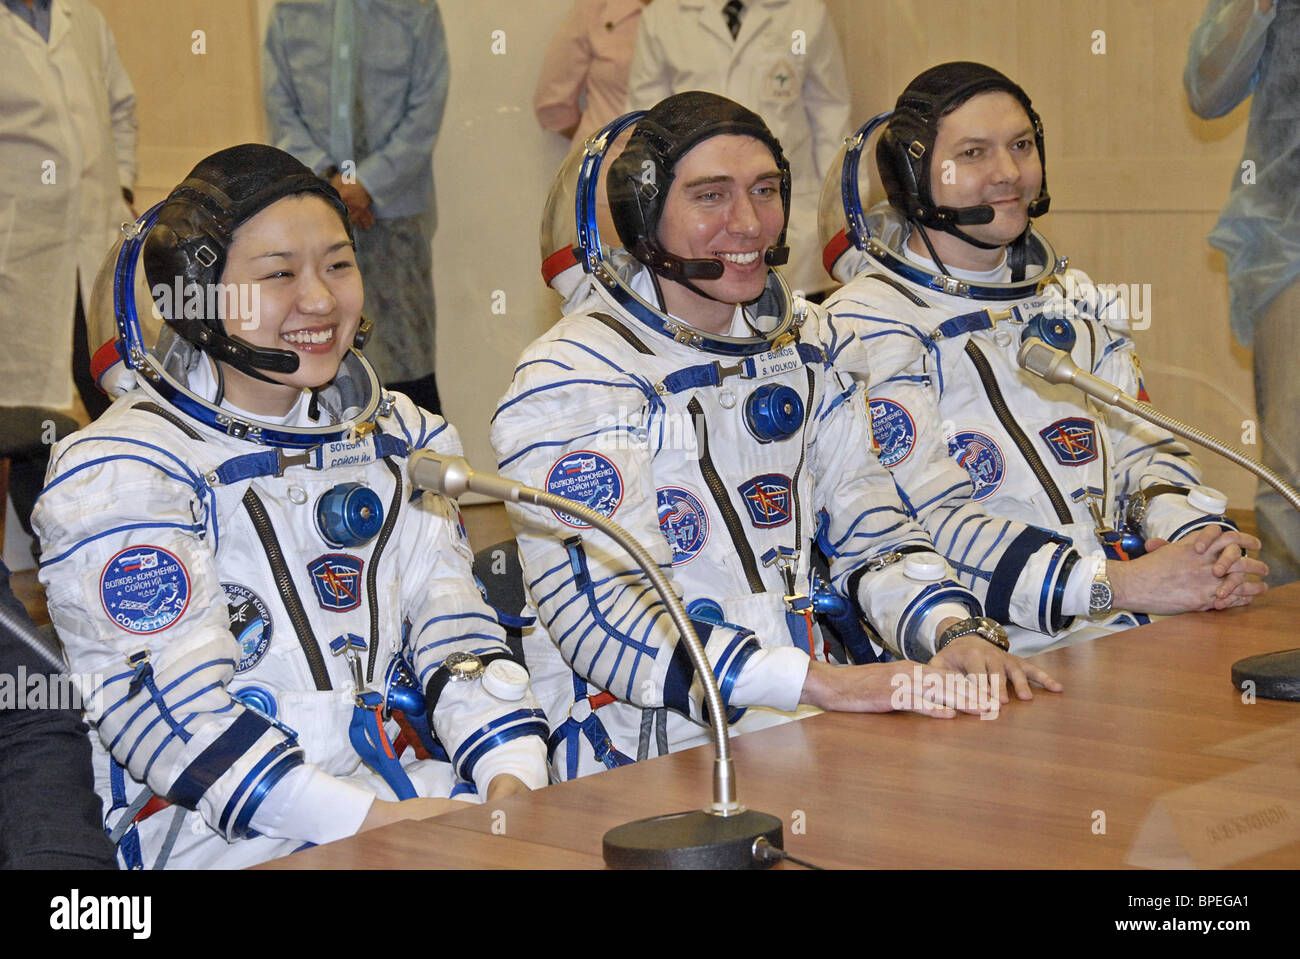 Expedition 17 crew launches from Baikonur Cosmodrome - Stock Image